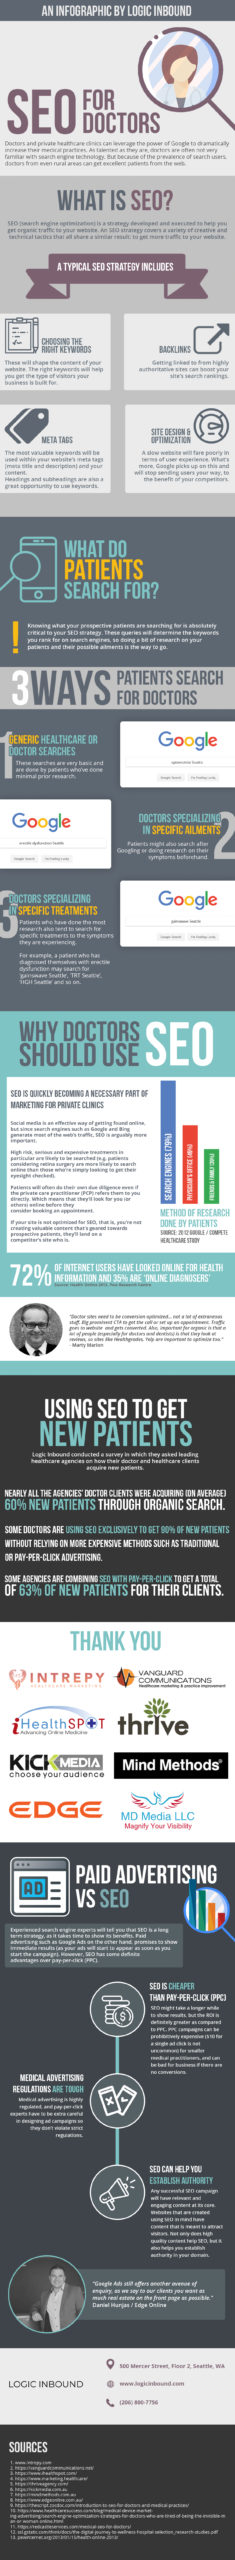 seo for doctors - healthcare marketing - digital marketing - iHealthSpot